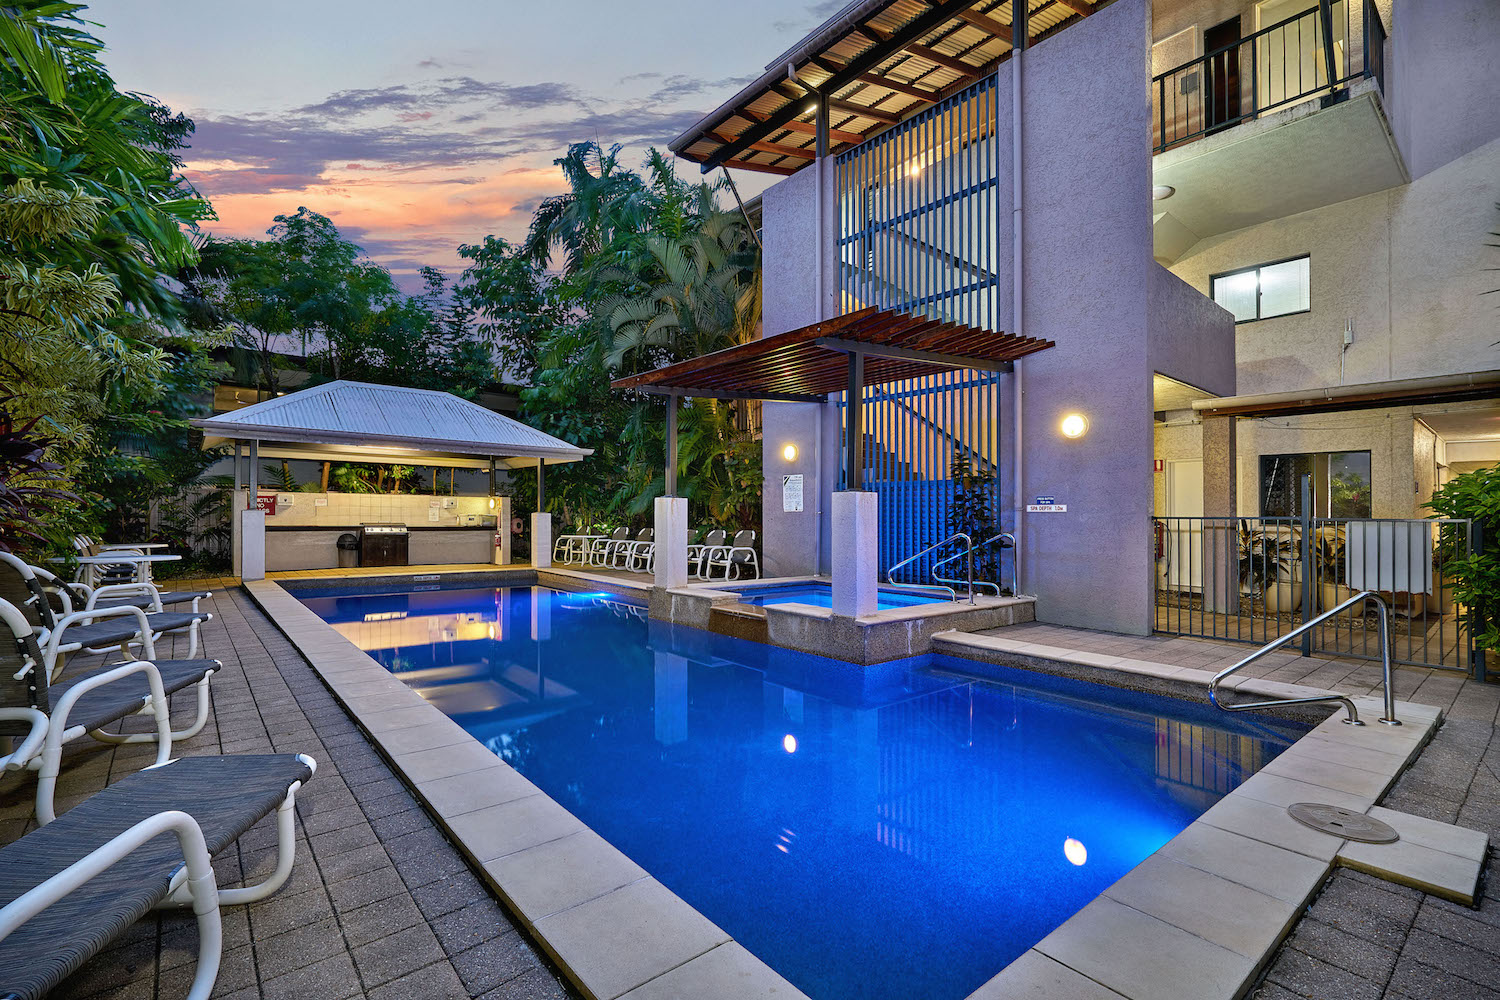 HEATED POOL CAIRNS GETAWAY ON GRAFTON HOLIDAY ACCOMMODATION